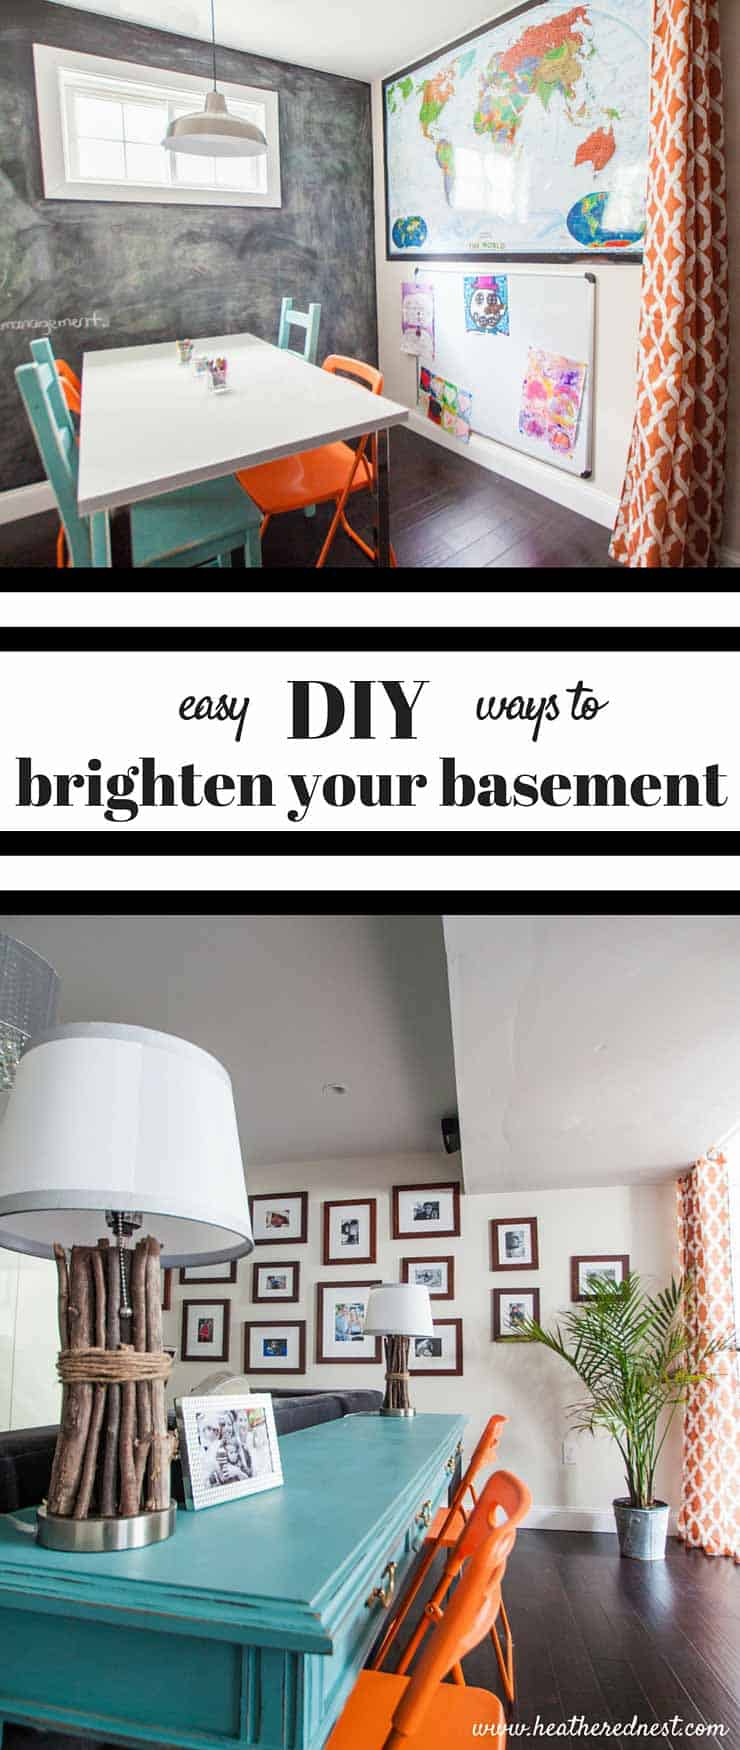 Bright ideas to brighten that basement! Basements can be dark and uninviting if not designed well. DIY and budget friendly basement ideas to brighten up your basement GREAT DIY SERIES! from www.heatherednest.com